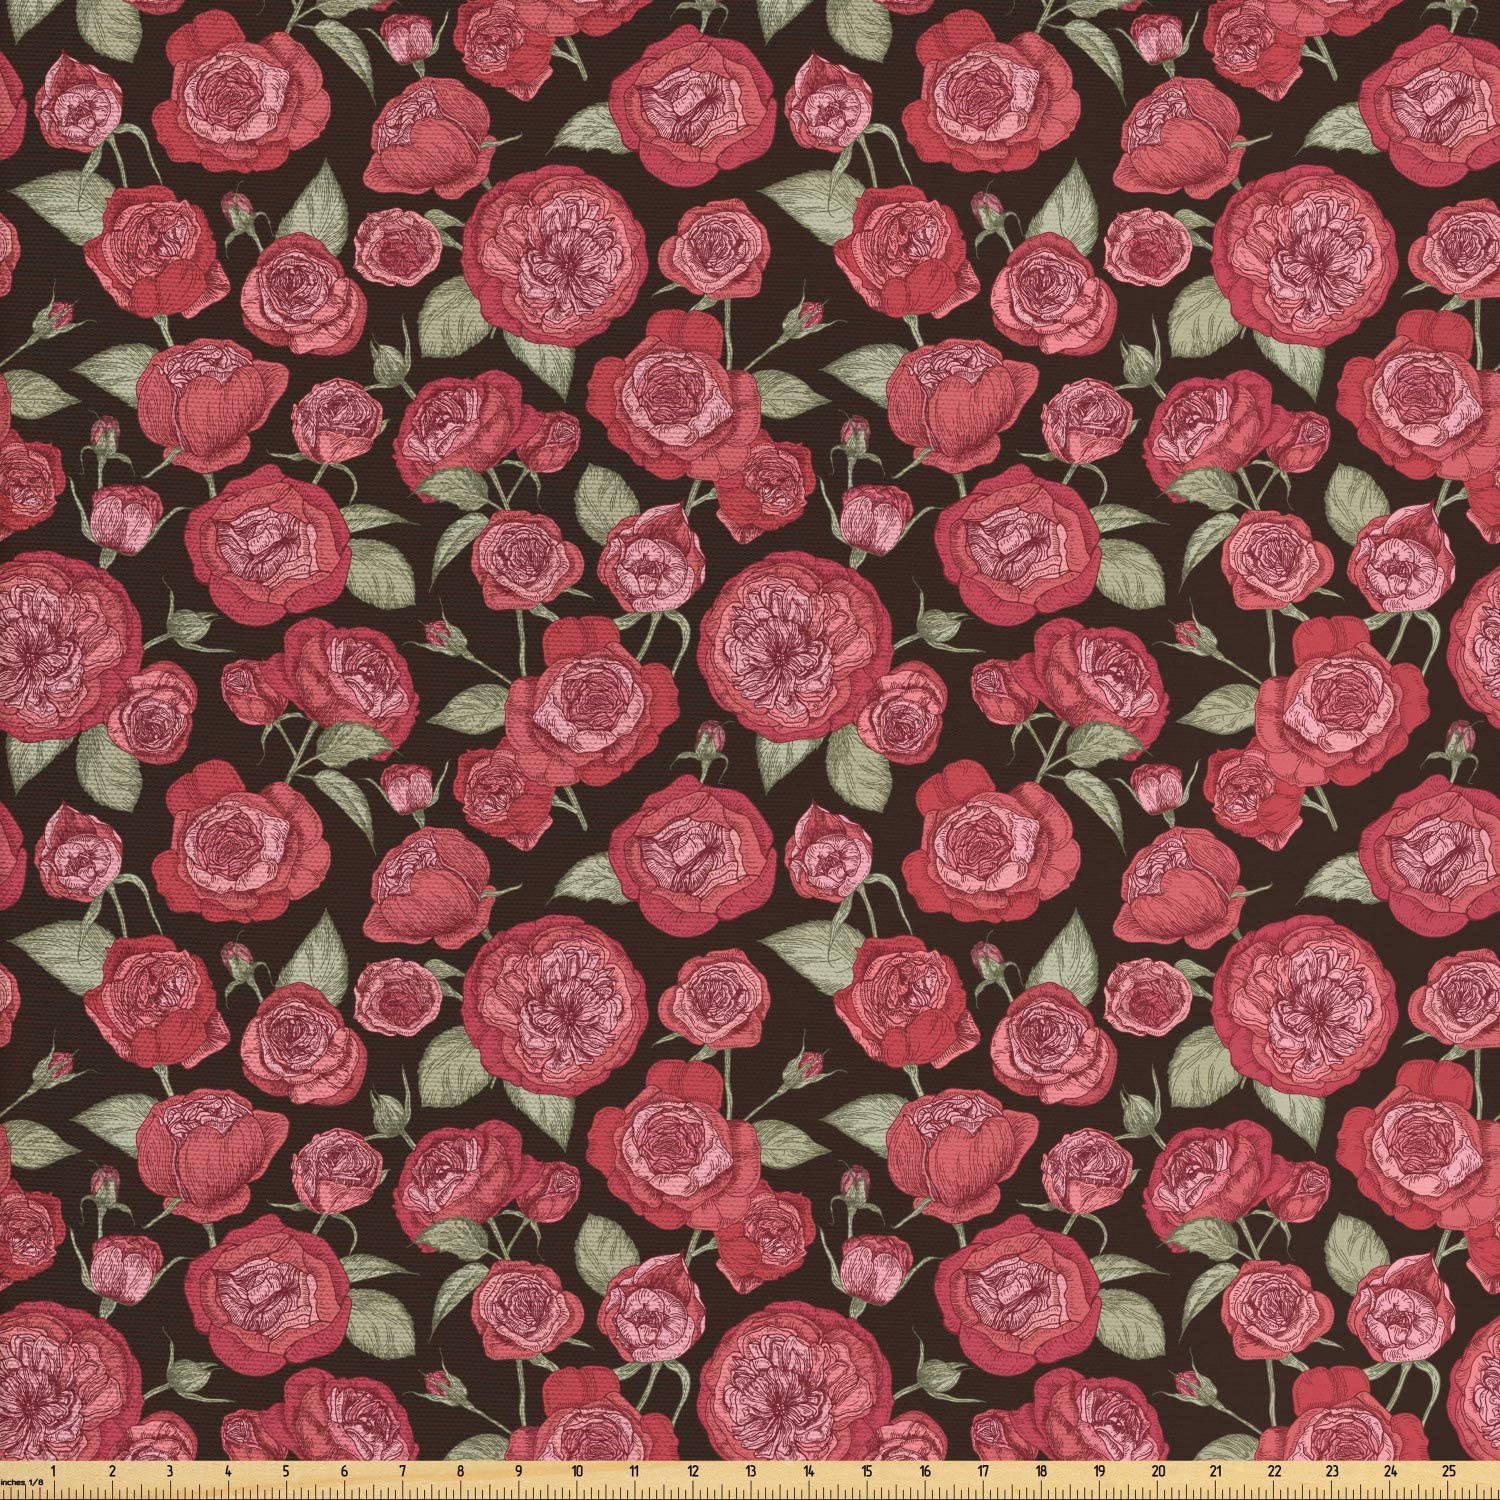 Ambesonne Vintage Rose Fabric by The Yard, Repetitive Flowers and Leaves Nature Tones Pattern, Decorative Fabric for Upholstery and Home Accents, 1 Yard, Dark Taupe Pale Ruby